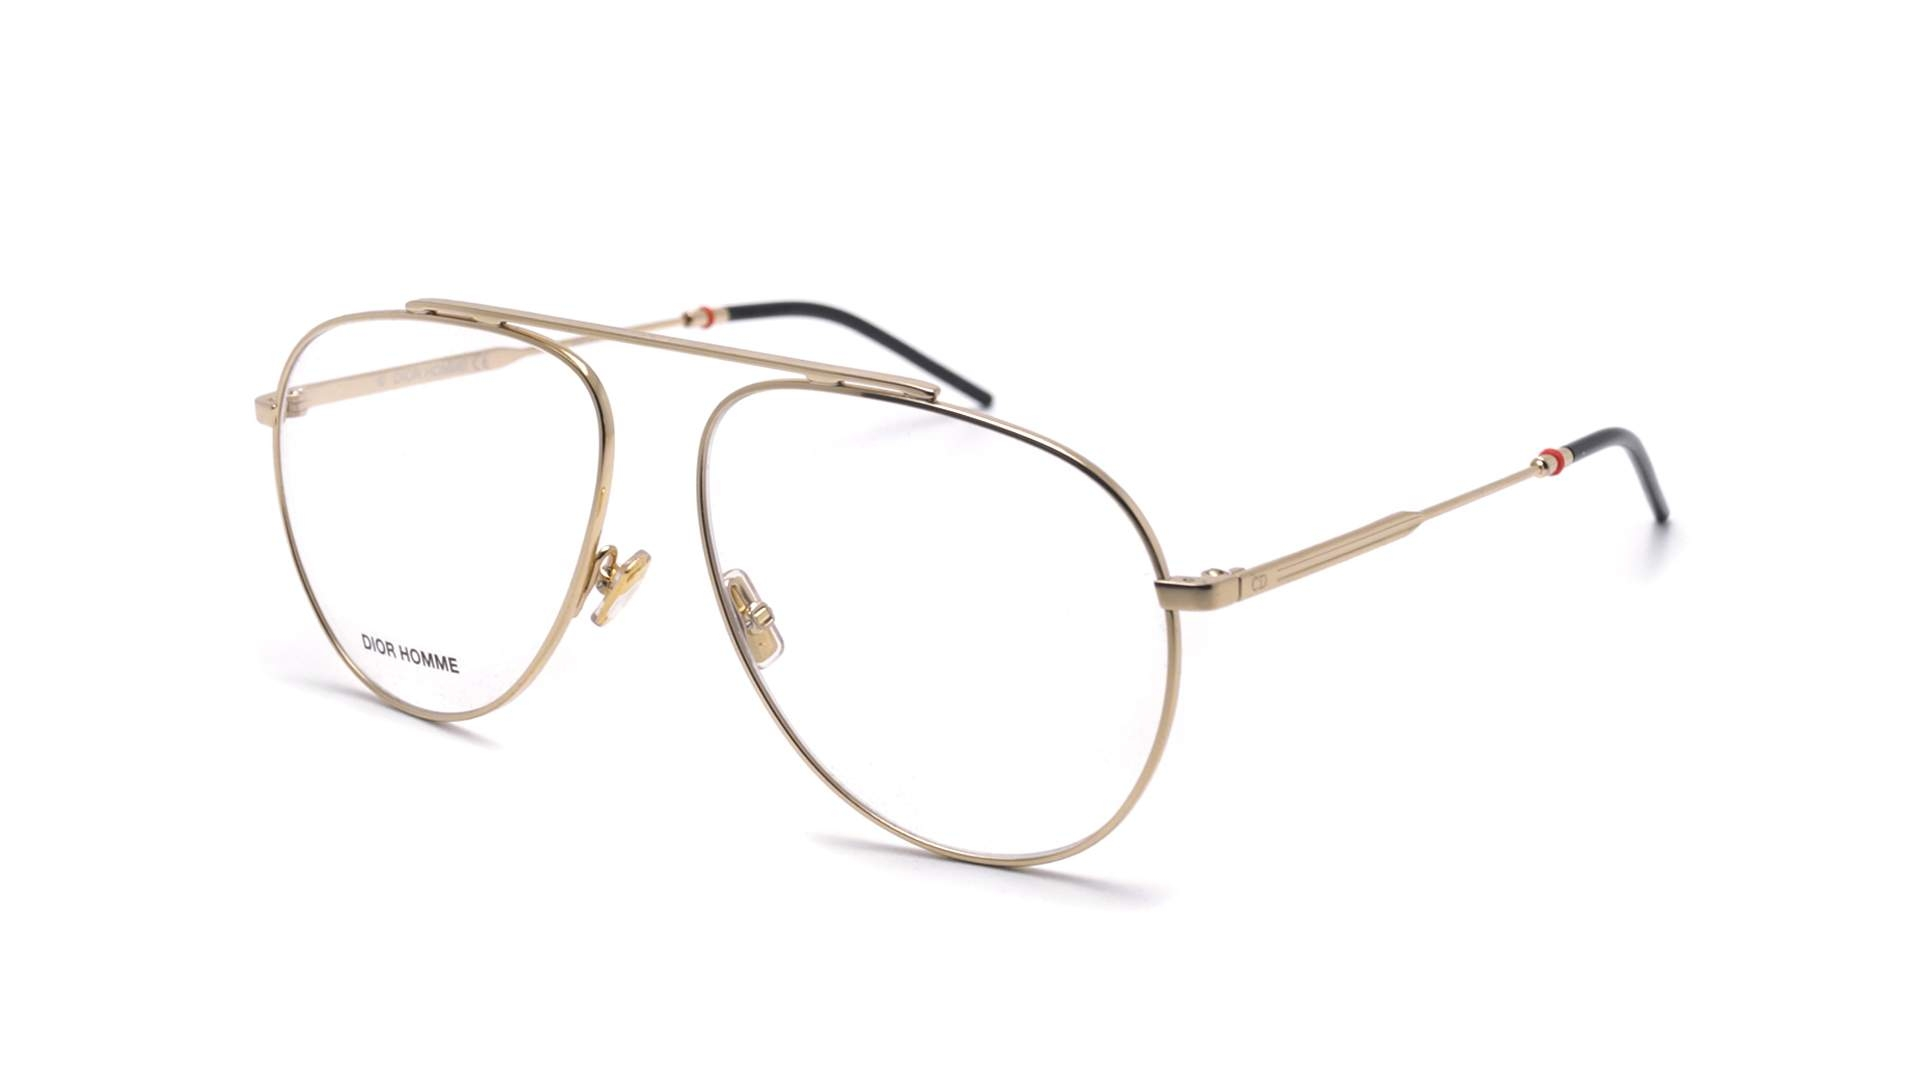 check-out c1584 c4979 Christian Dior - Occhiale da Vista Uomo, Dior Gold 0221 J5G